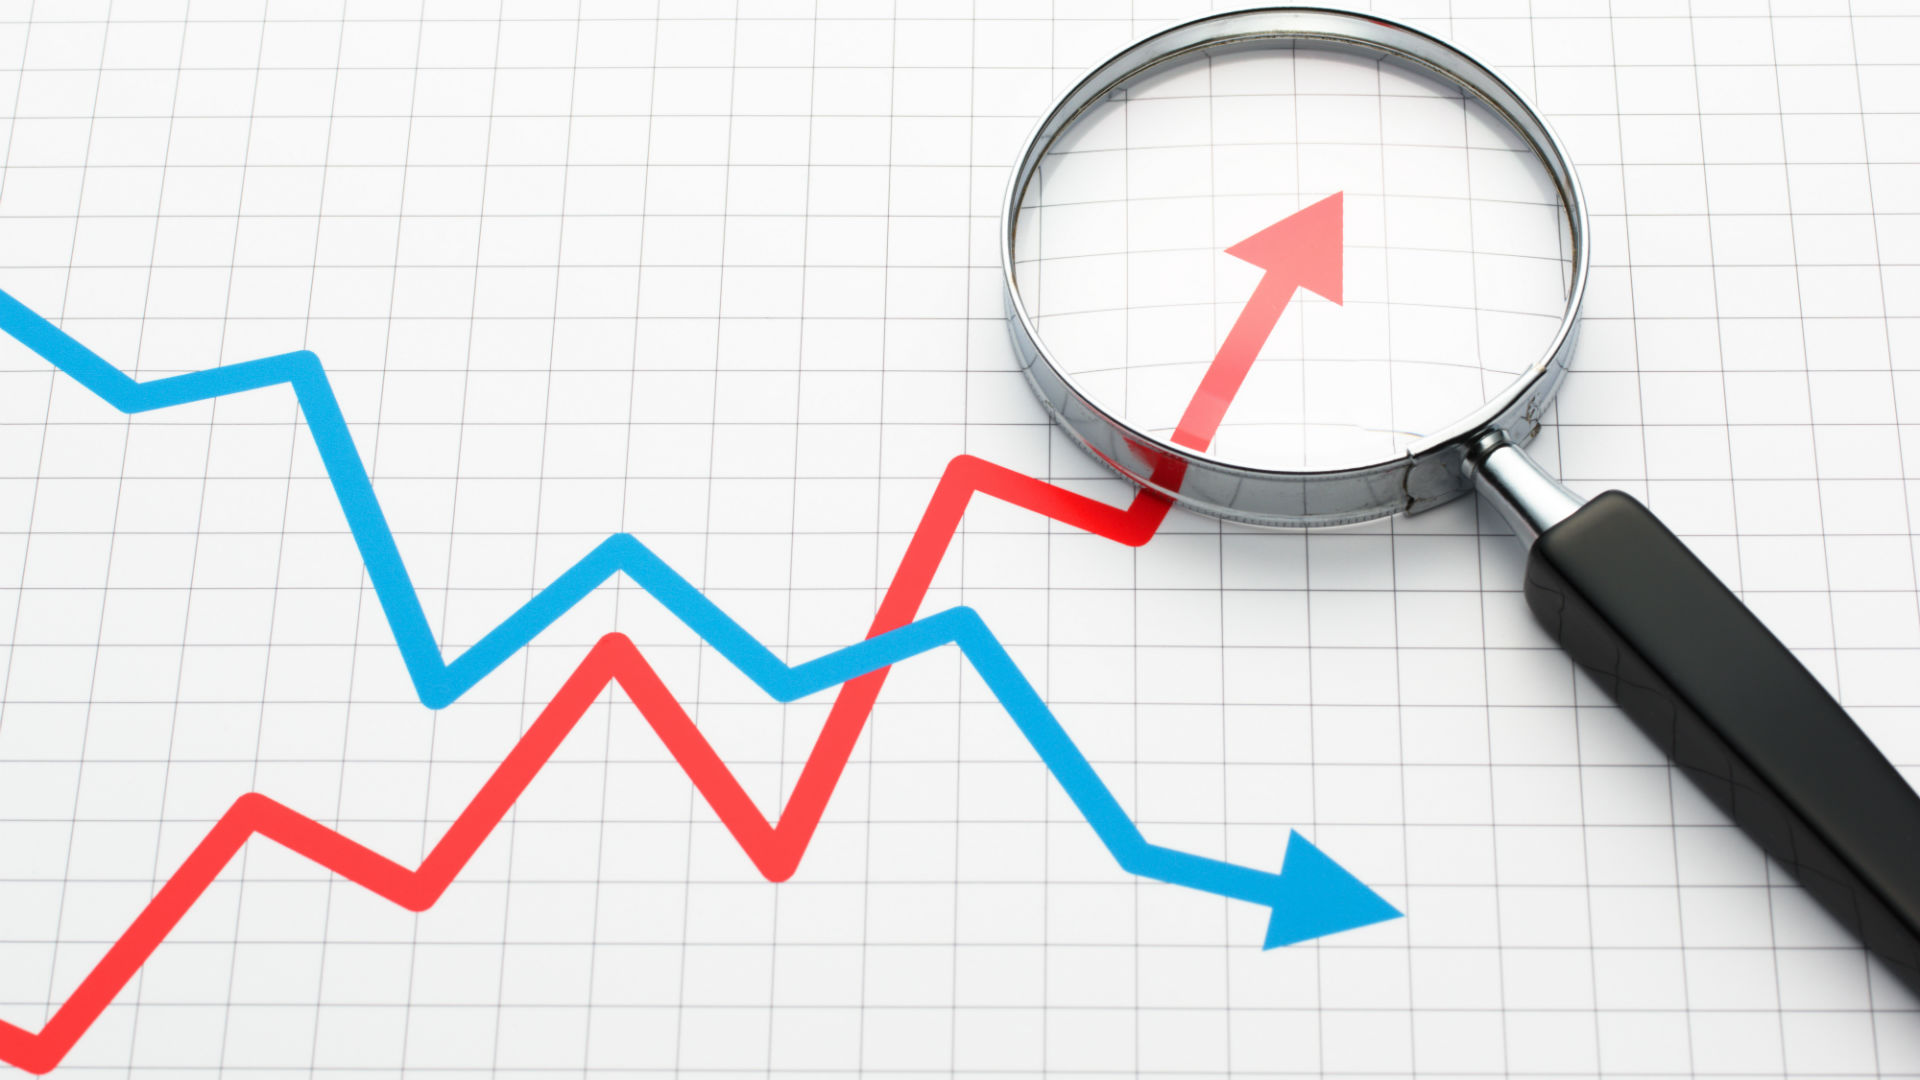 graph-line-trend-analytics-magnifying-glass-ss